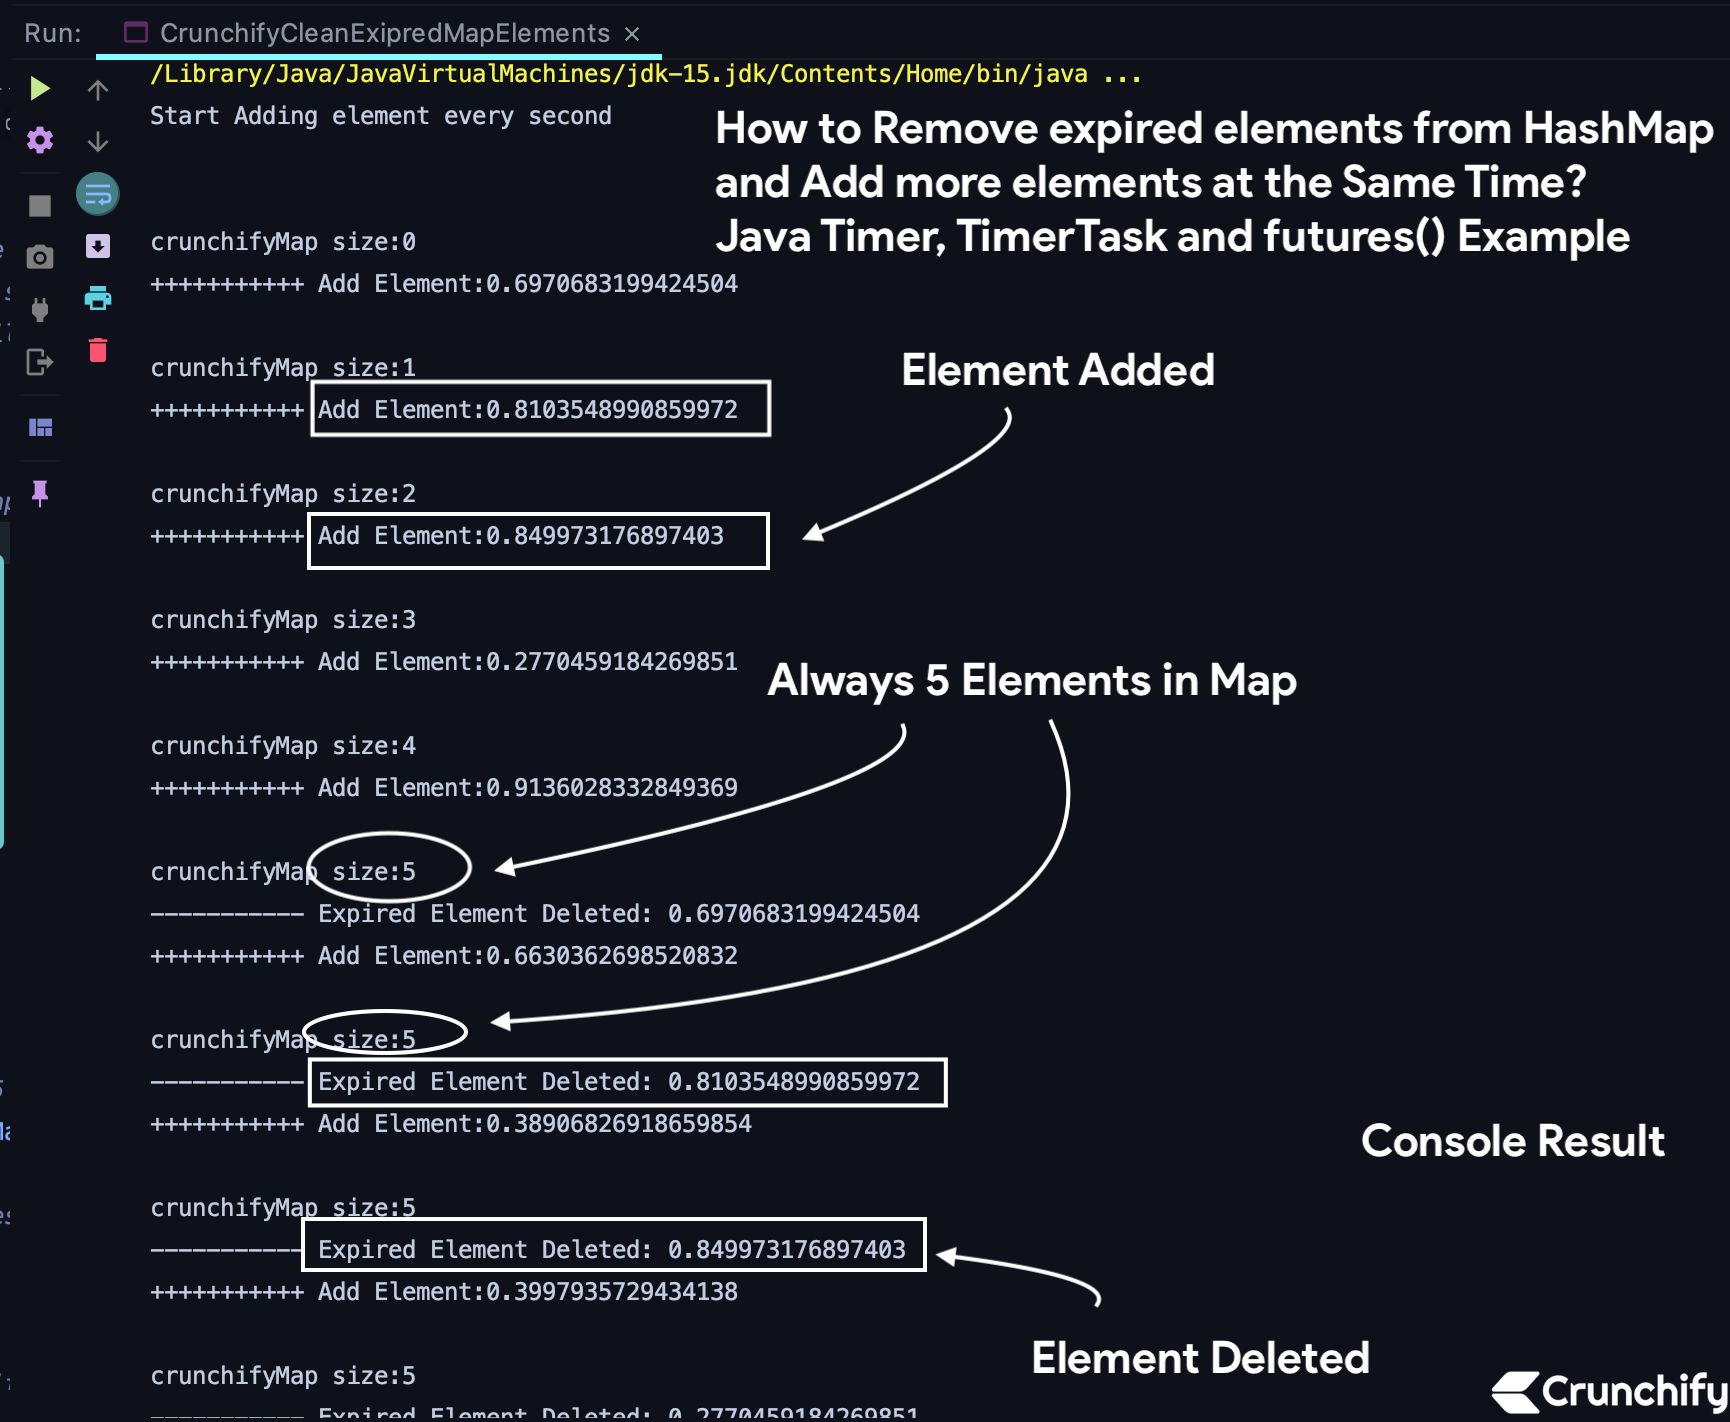 How to Remove expired elements from HashMap and Add more elements at the Same Time - Java Timer, TimerTask and futures() - Console Result